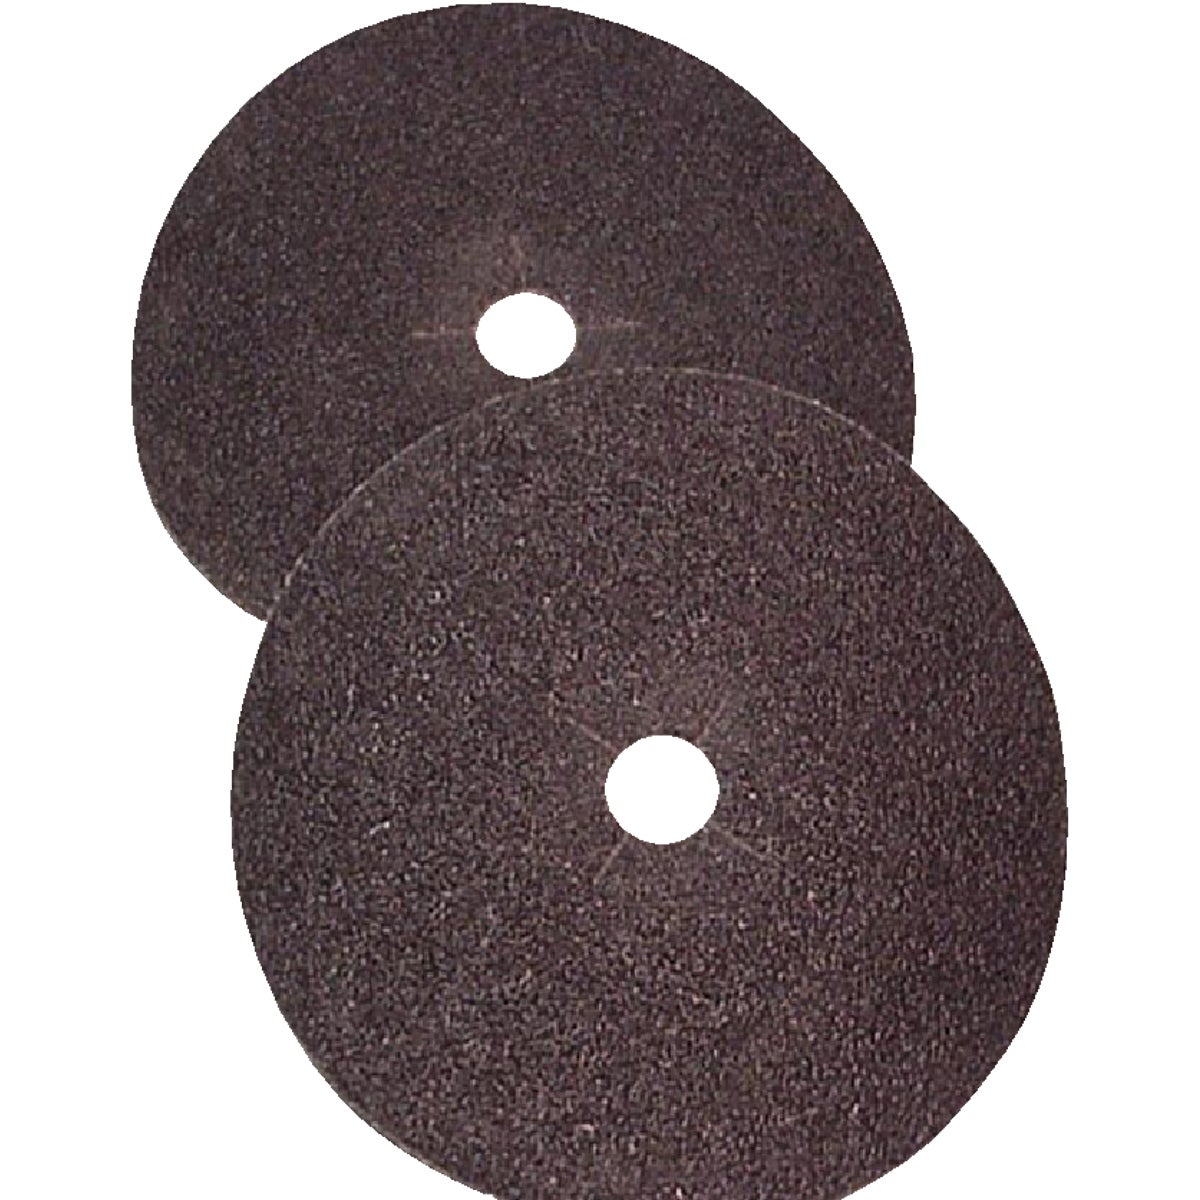 "5"" 36G FLR SANDING DISC - 006-850236 by Virginia Abrasives"